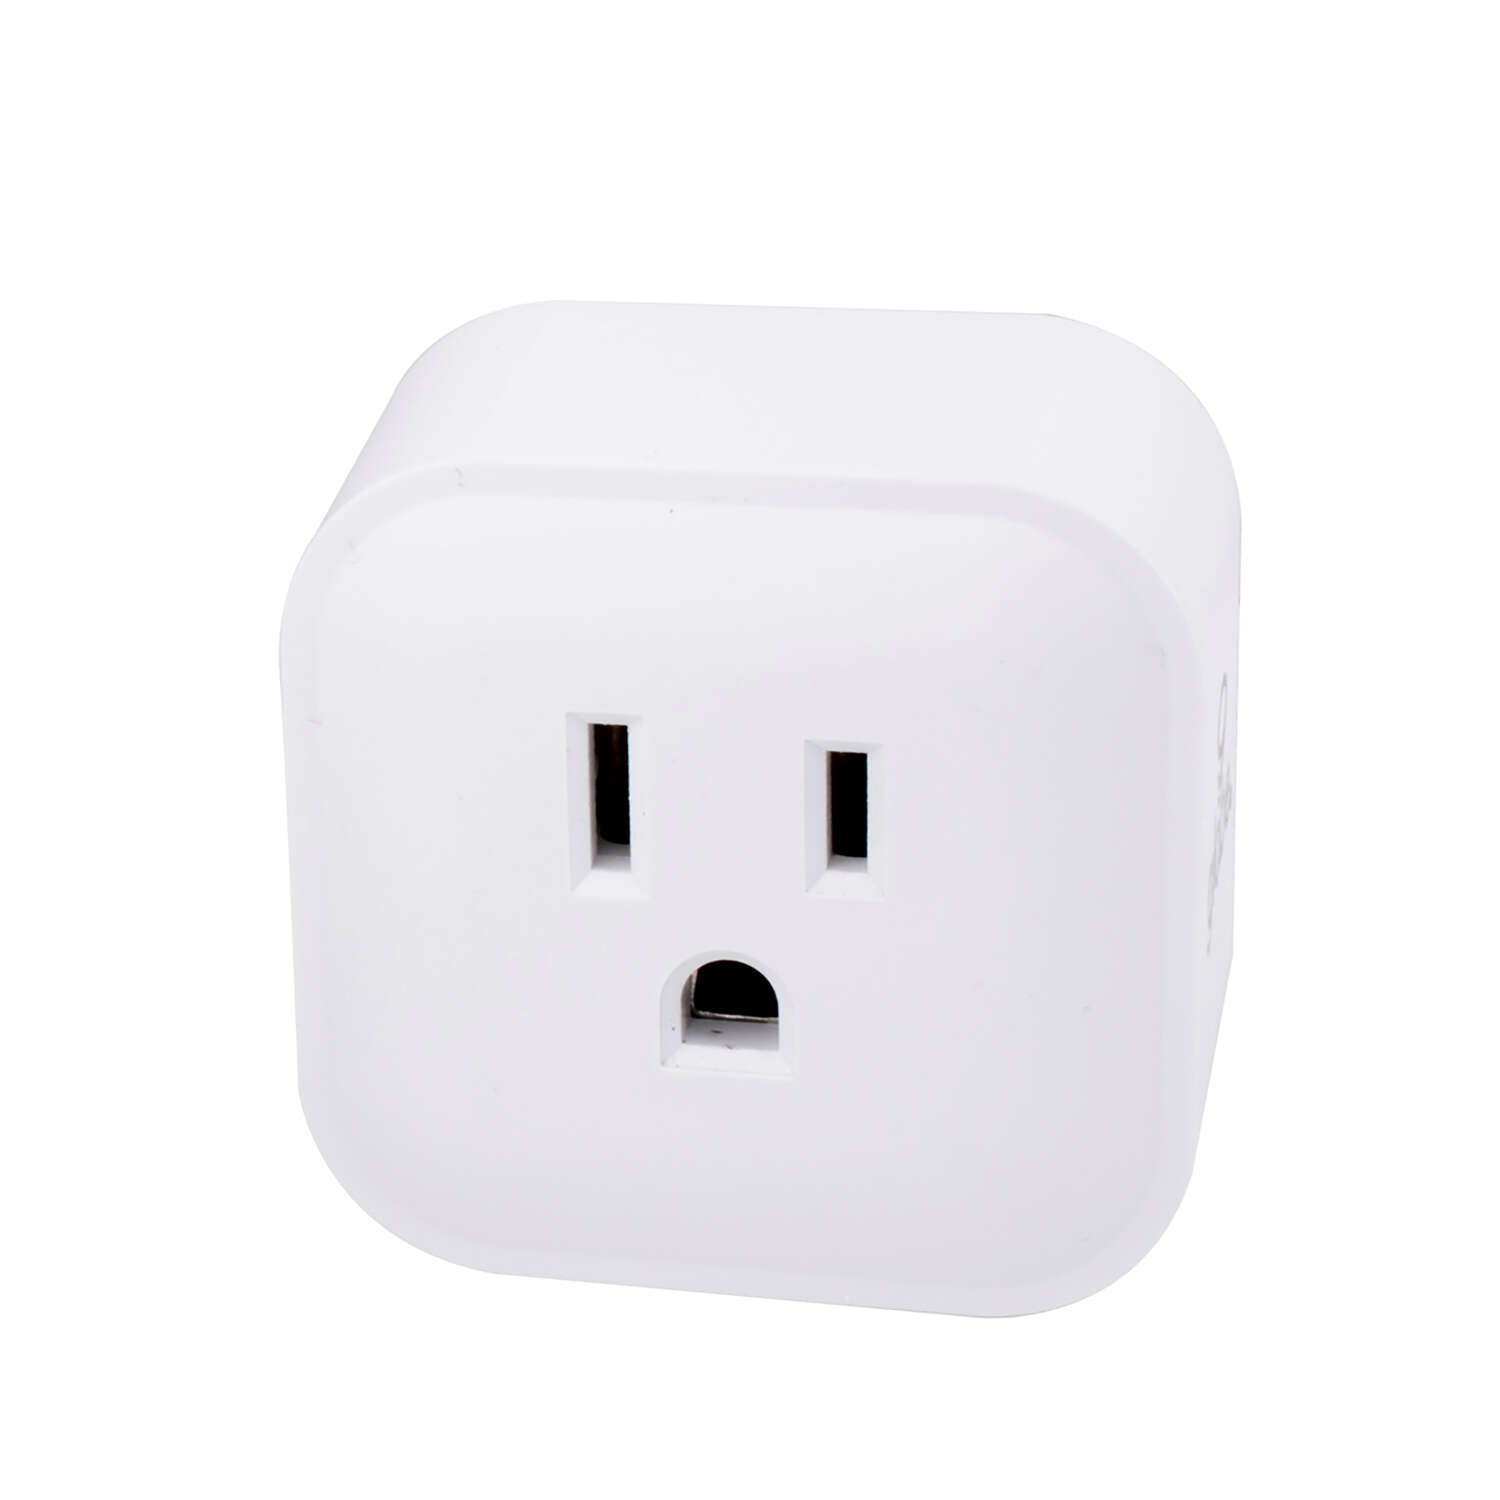 Globe Electric  Wi-Fi Smart Home  15 amps 125 volt Single  White  Electrical WiFi Outlet  1 pk